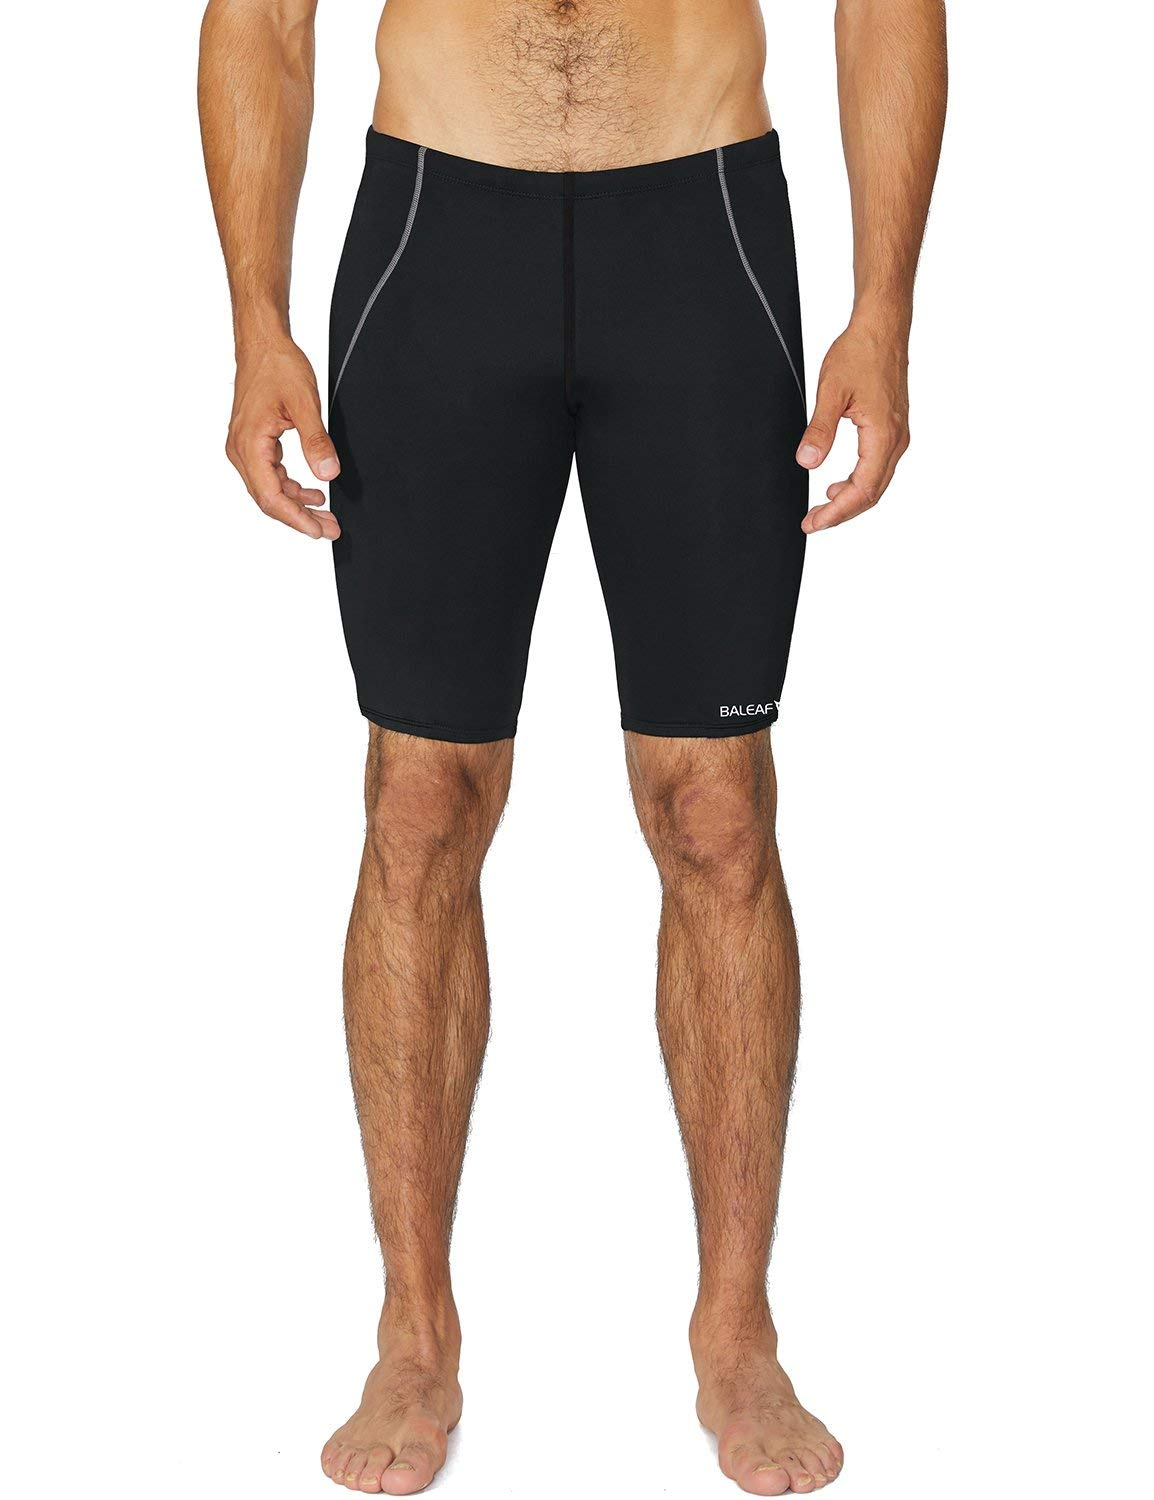 94adfea273 Baleaf Men's Athletic Durable Training Polyester Jammer Swimsuit product  image